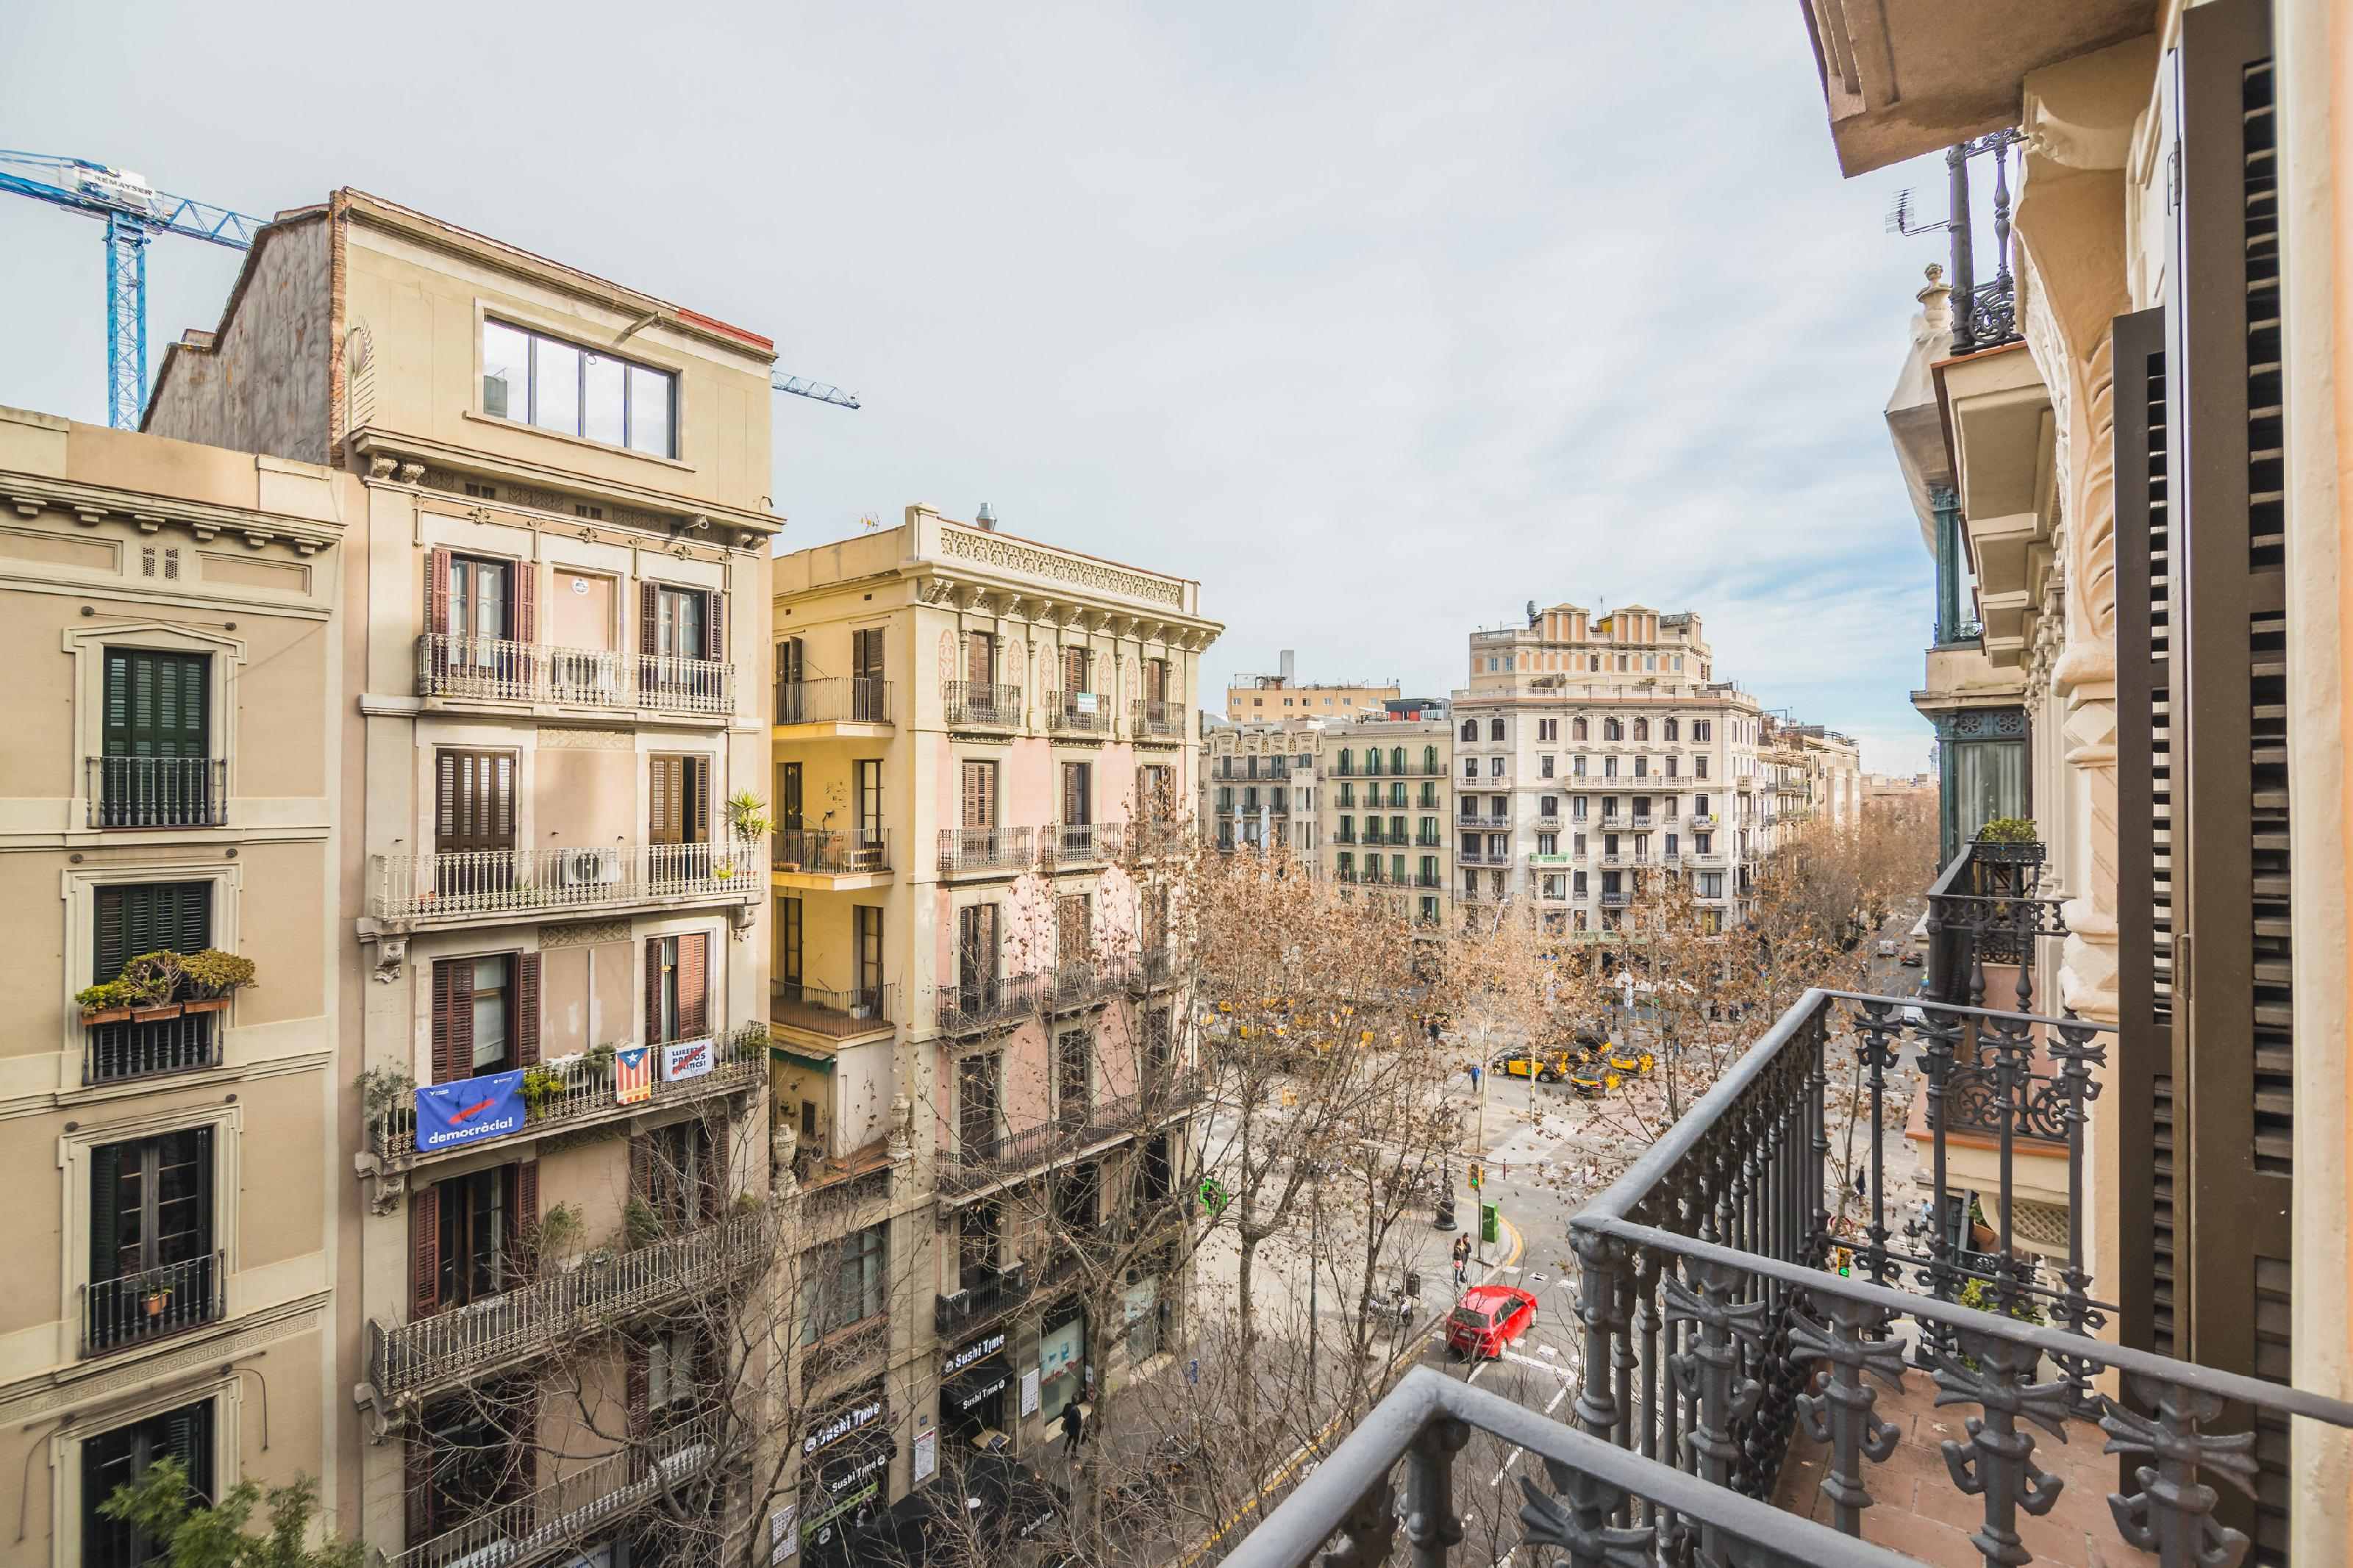 221579 Commercial Premises for sale in Eixample, Old Left Eixample 7